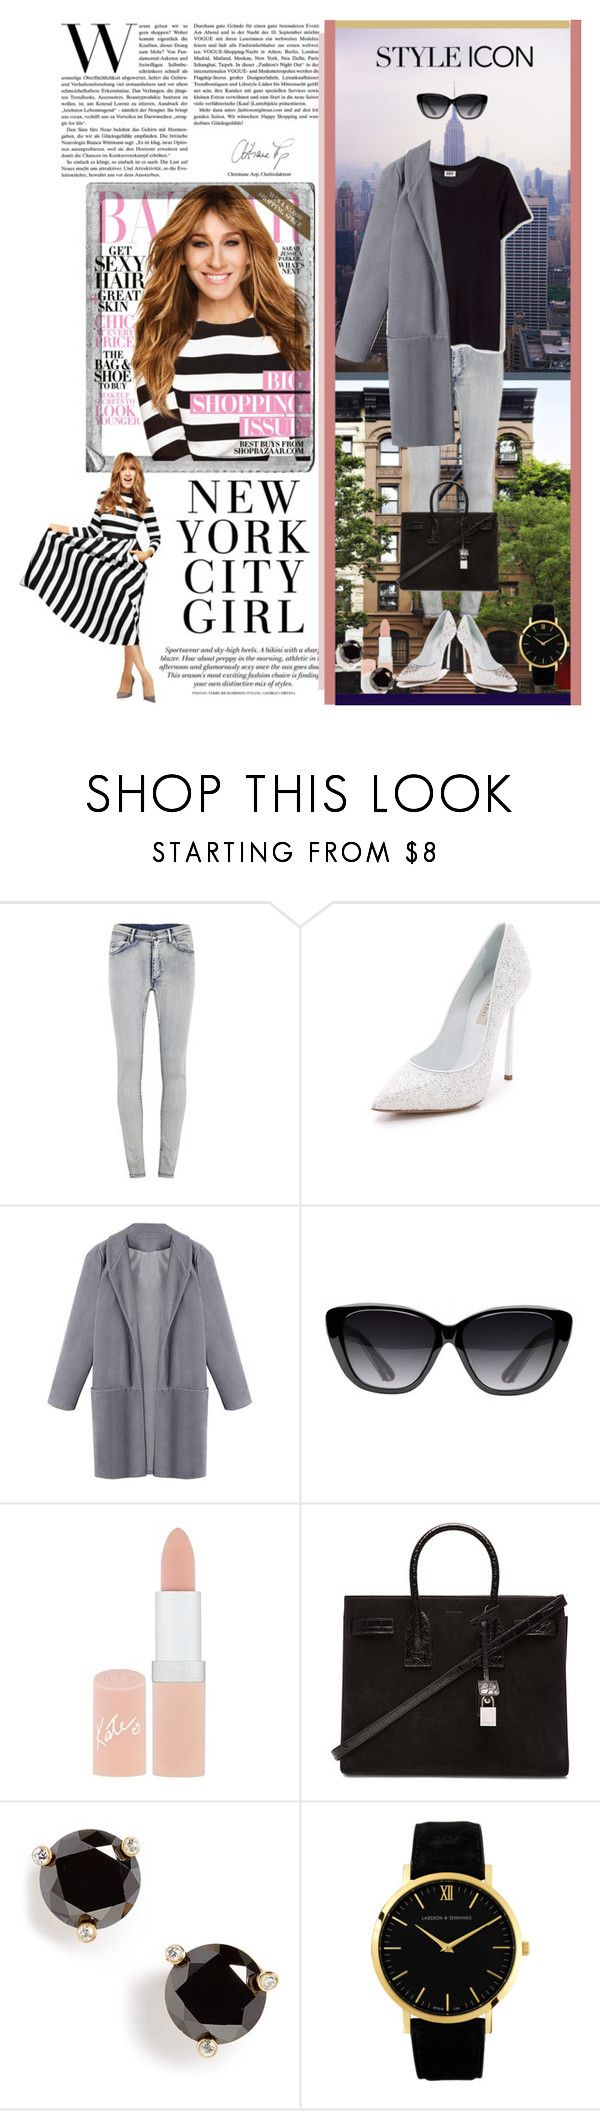 """""""Style Icon: Sarah Jessica Parker"""" by cvg171d ❤ liked on Polyvore featuring Sarah Jessica Parker, Cheap Monday, Casadei, Elizabeth and James, Rimmel, Yves Saint Laurent, Kate Spade, Larsson & Jennings and Polaroid"""